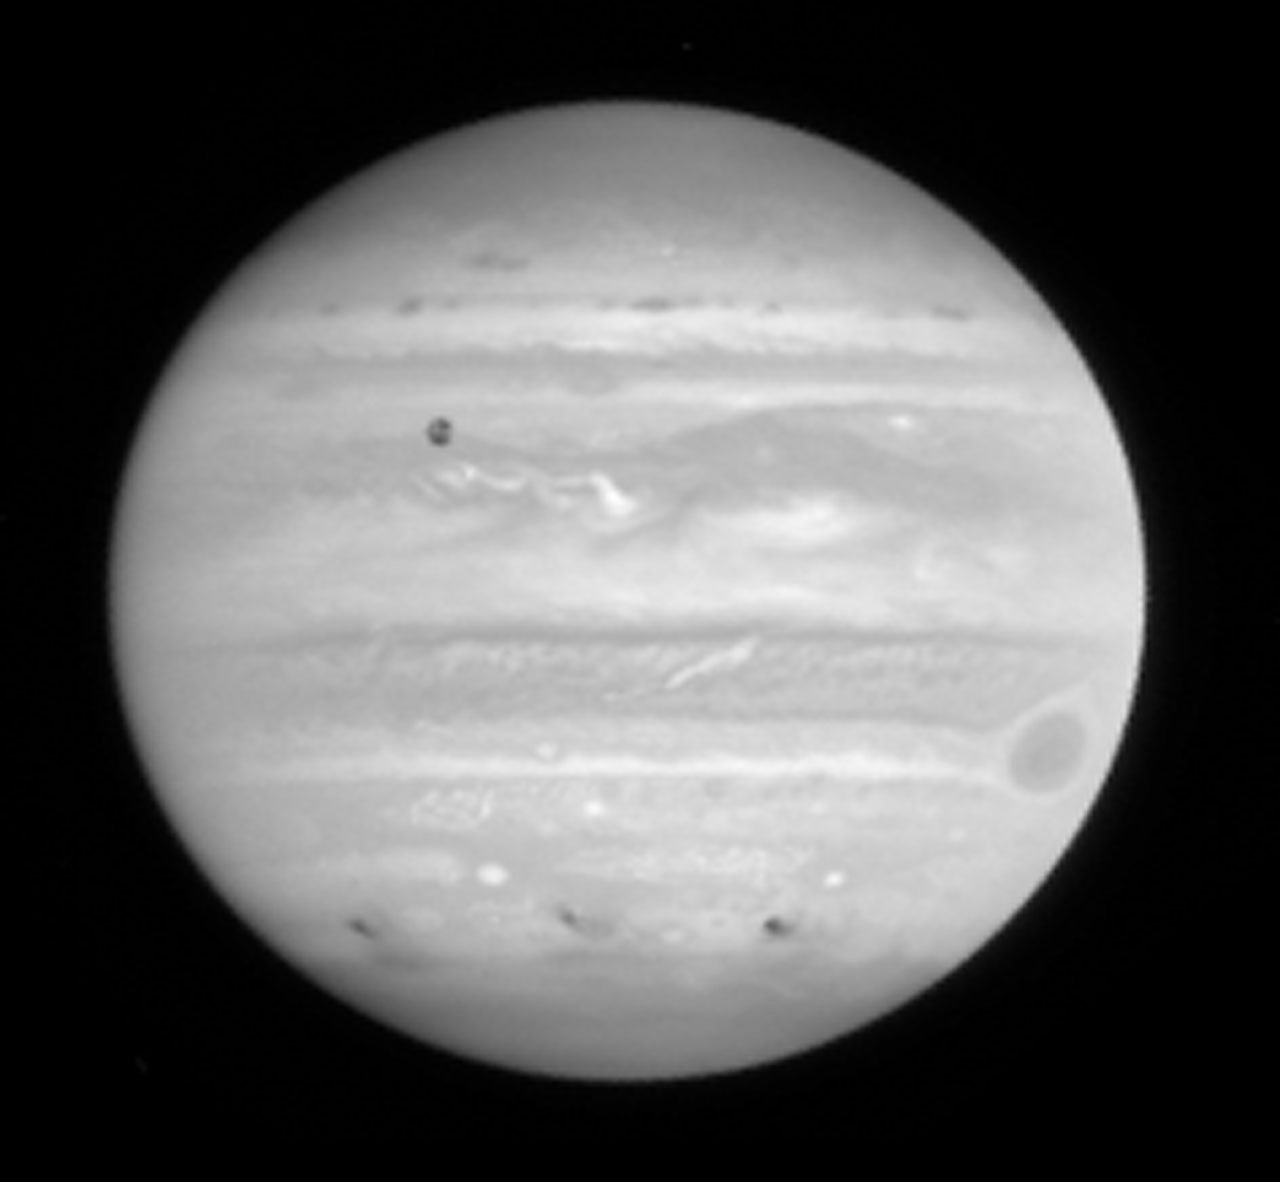 hubble comet and jupiter - photo #2